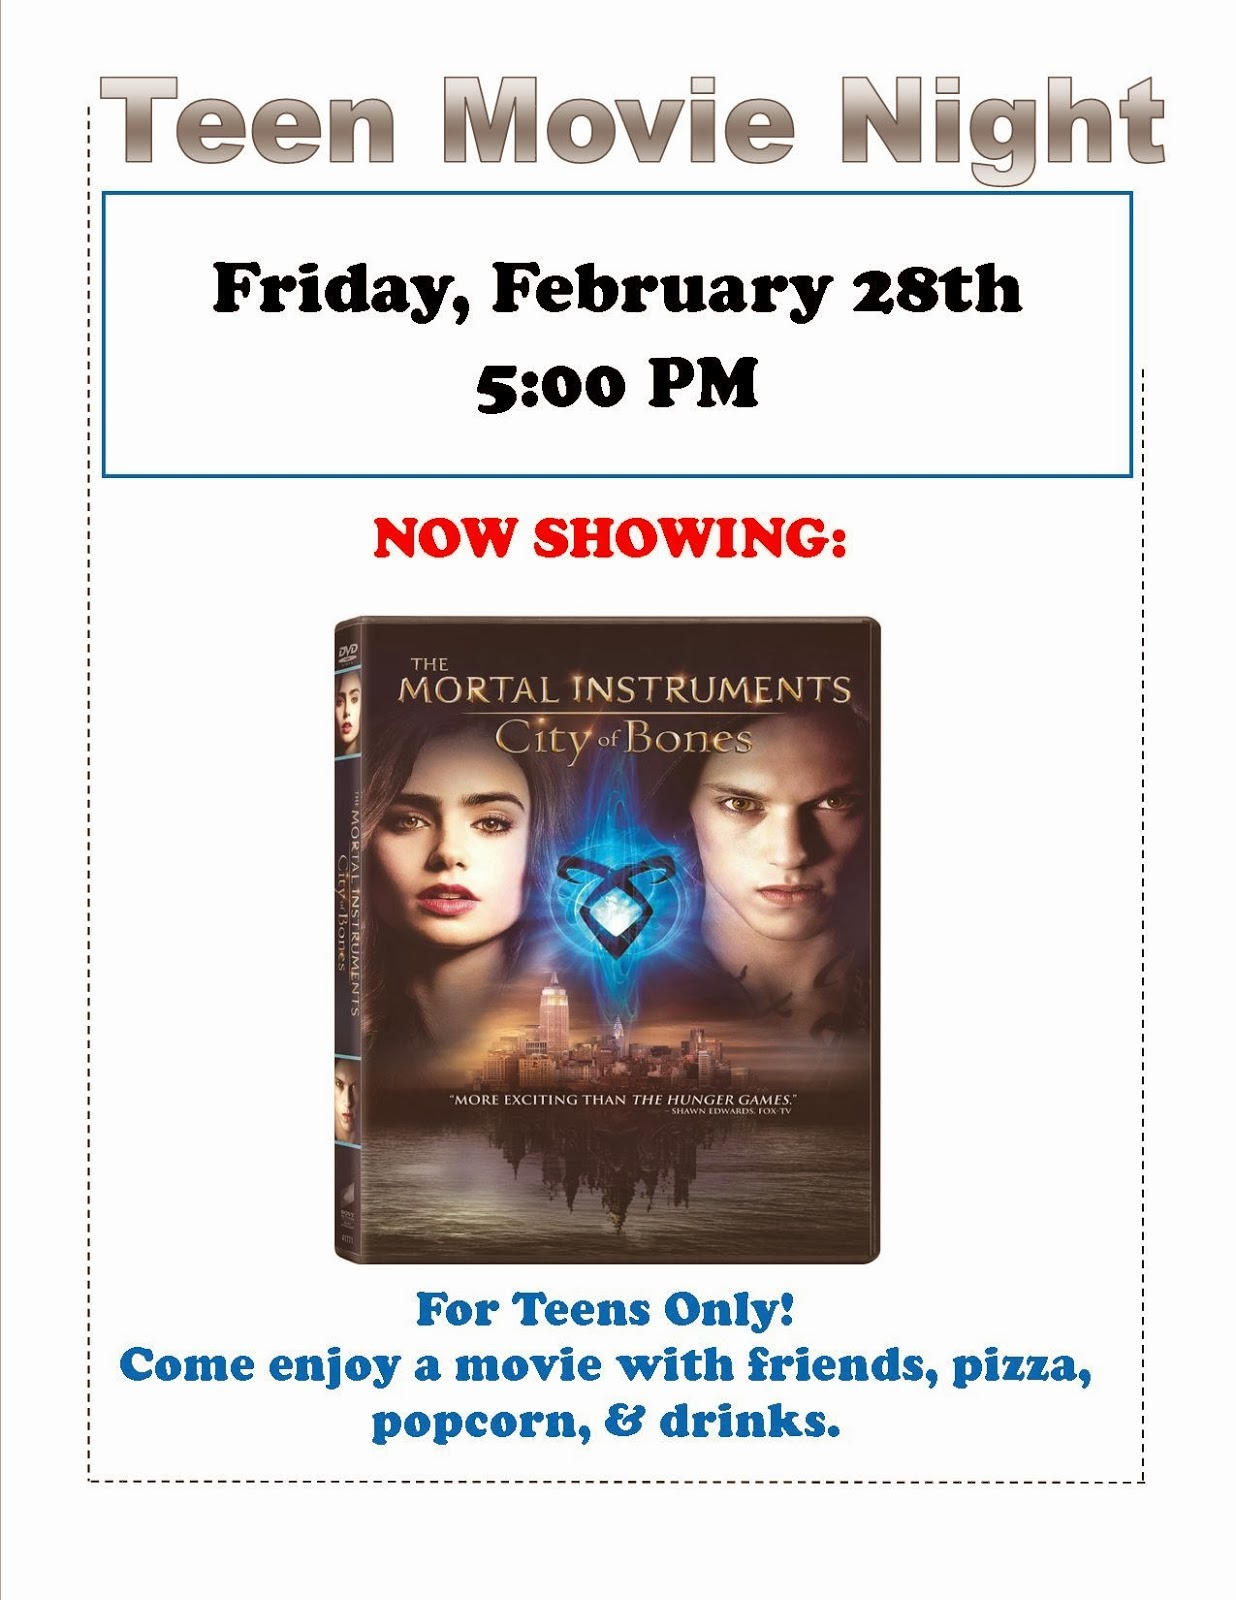 Teen Movie Night - City of Bones